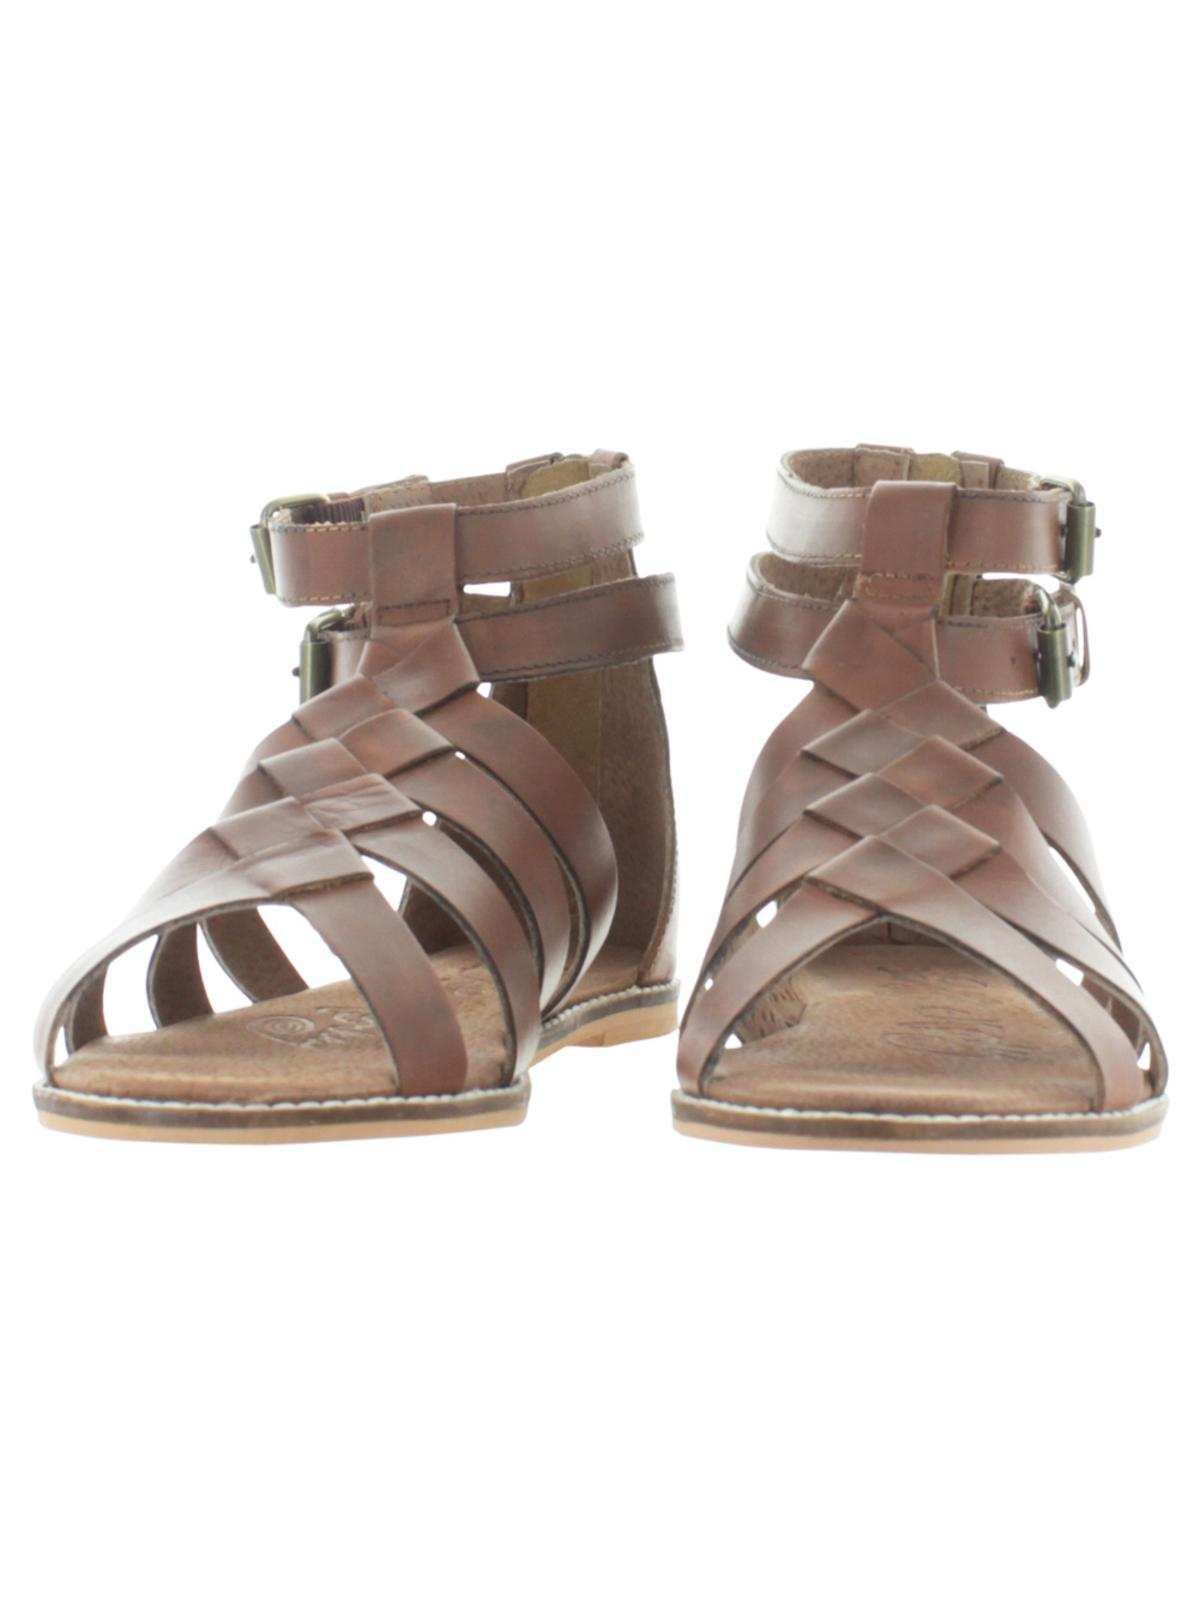 bc46df4c8b8 Naughty Monkey - Naughty Monkey Womens Cilani Leather Caged Gladiator  Sandals - Walmart.com